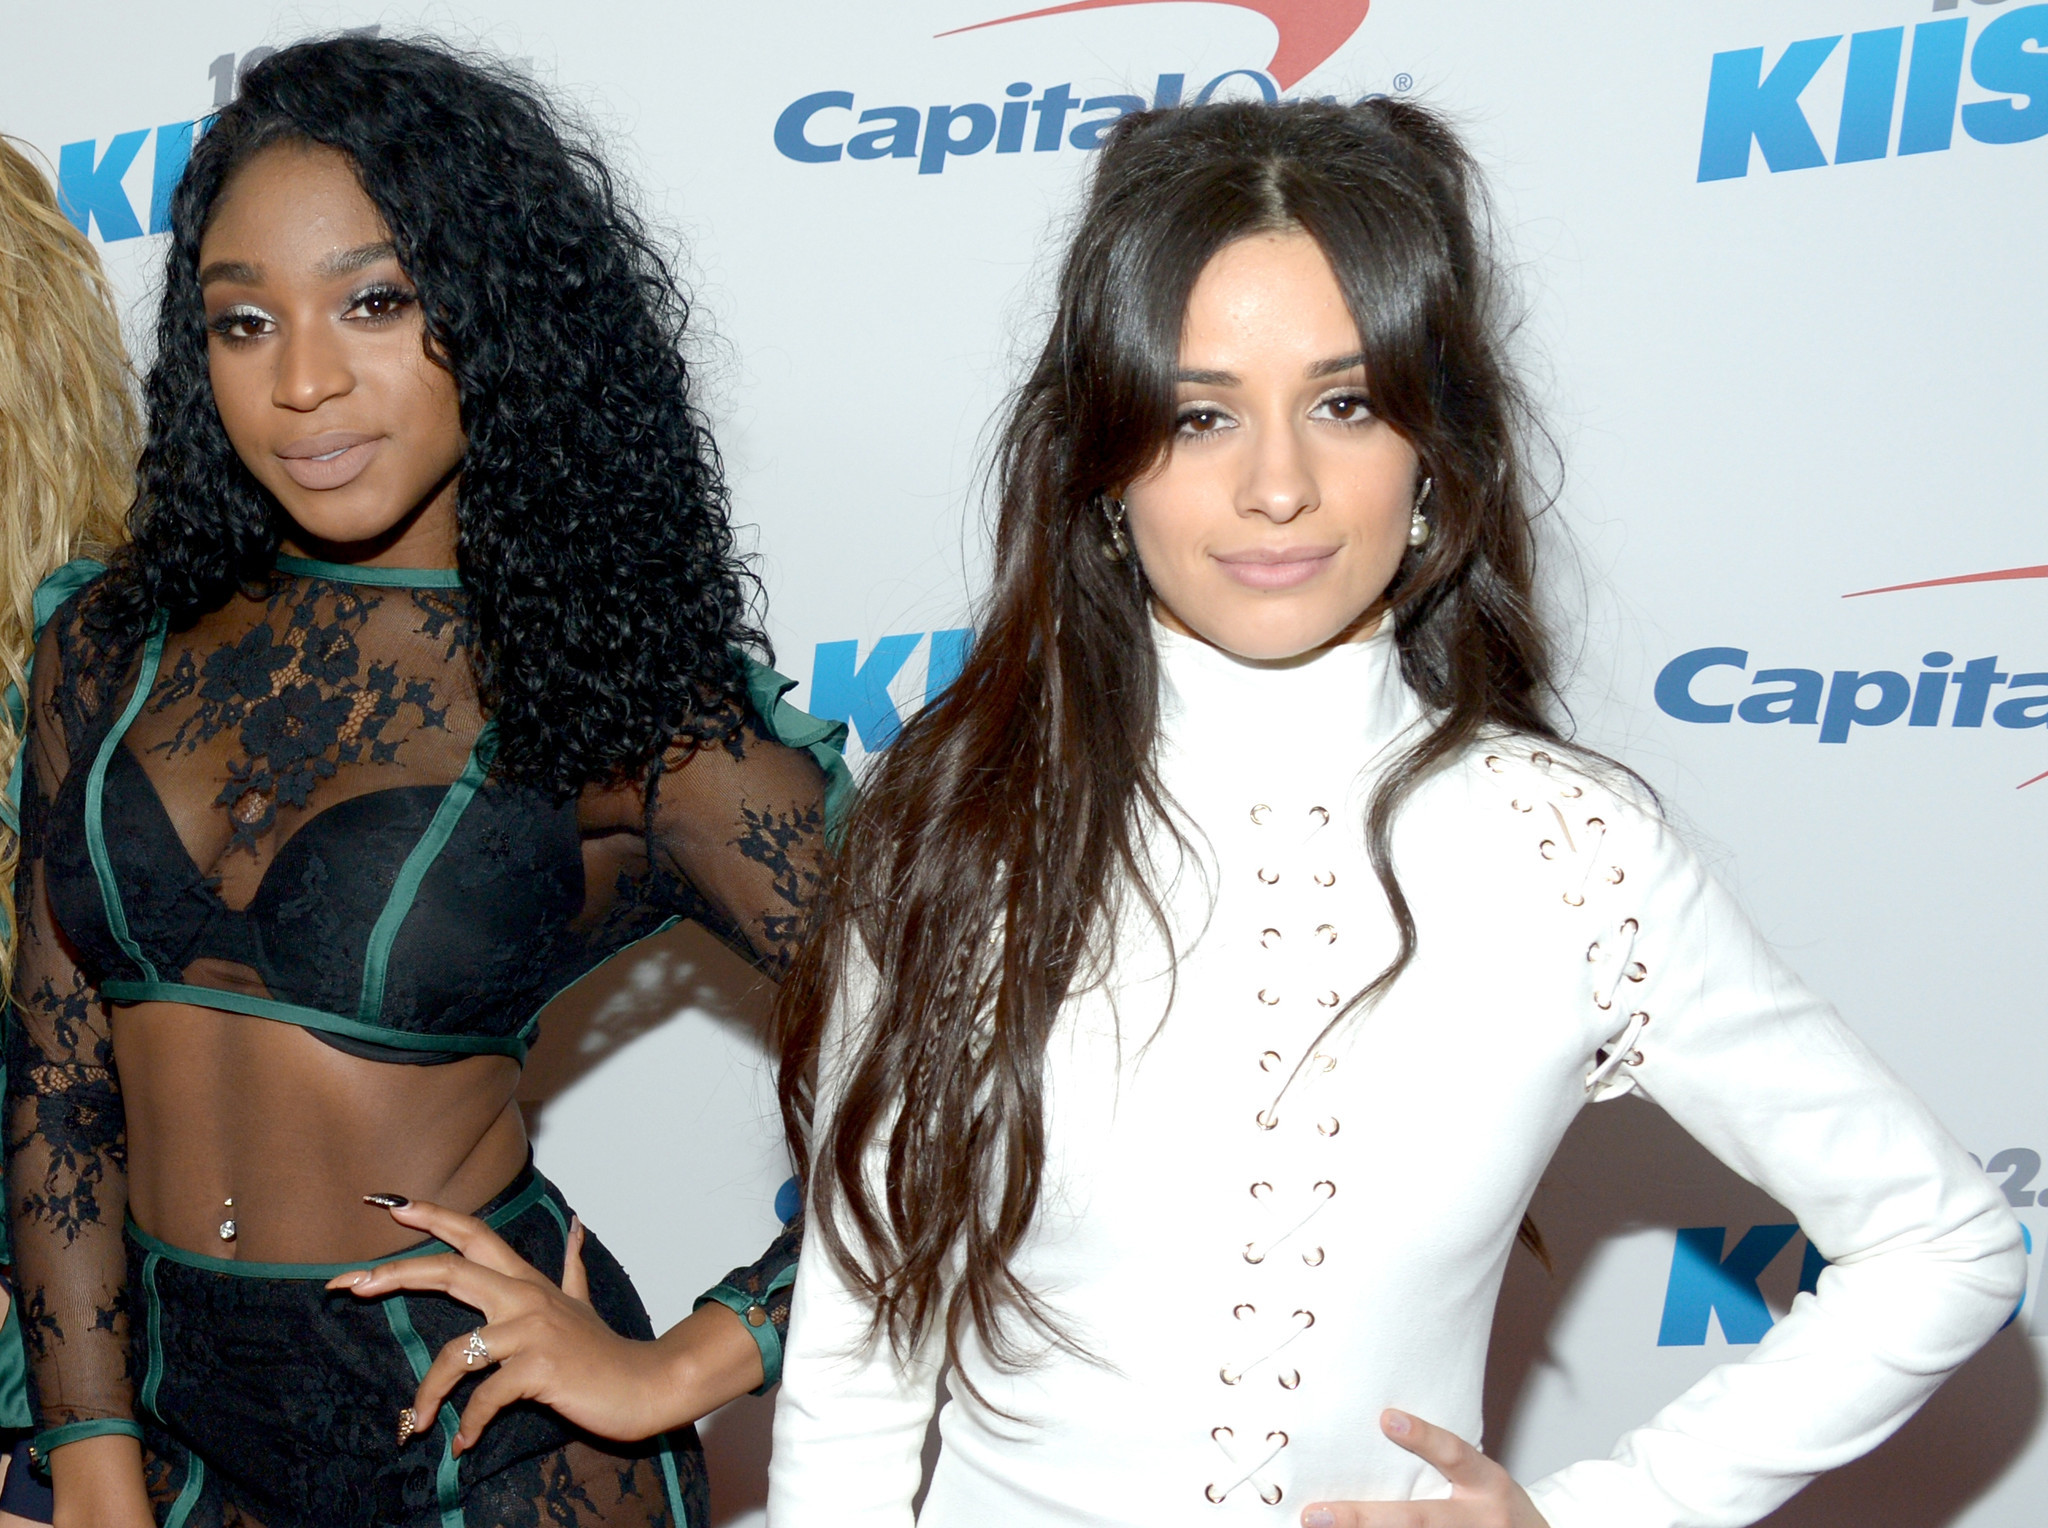 Singer Normani rips Camila Cabello's 'absolutely unacceptable' racist posts